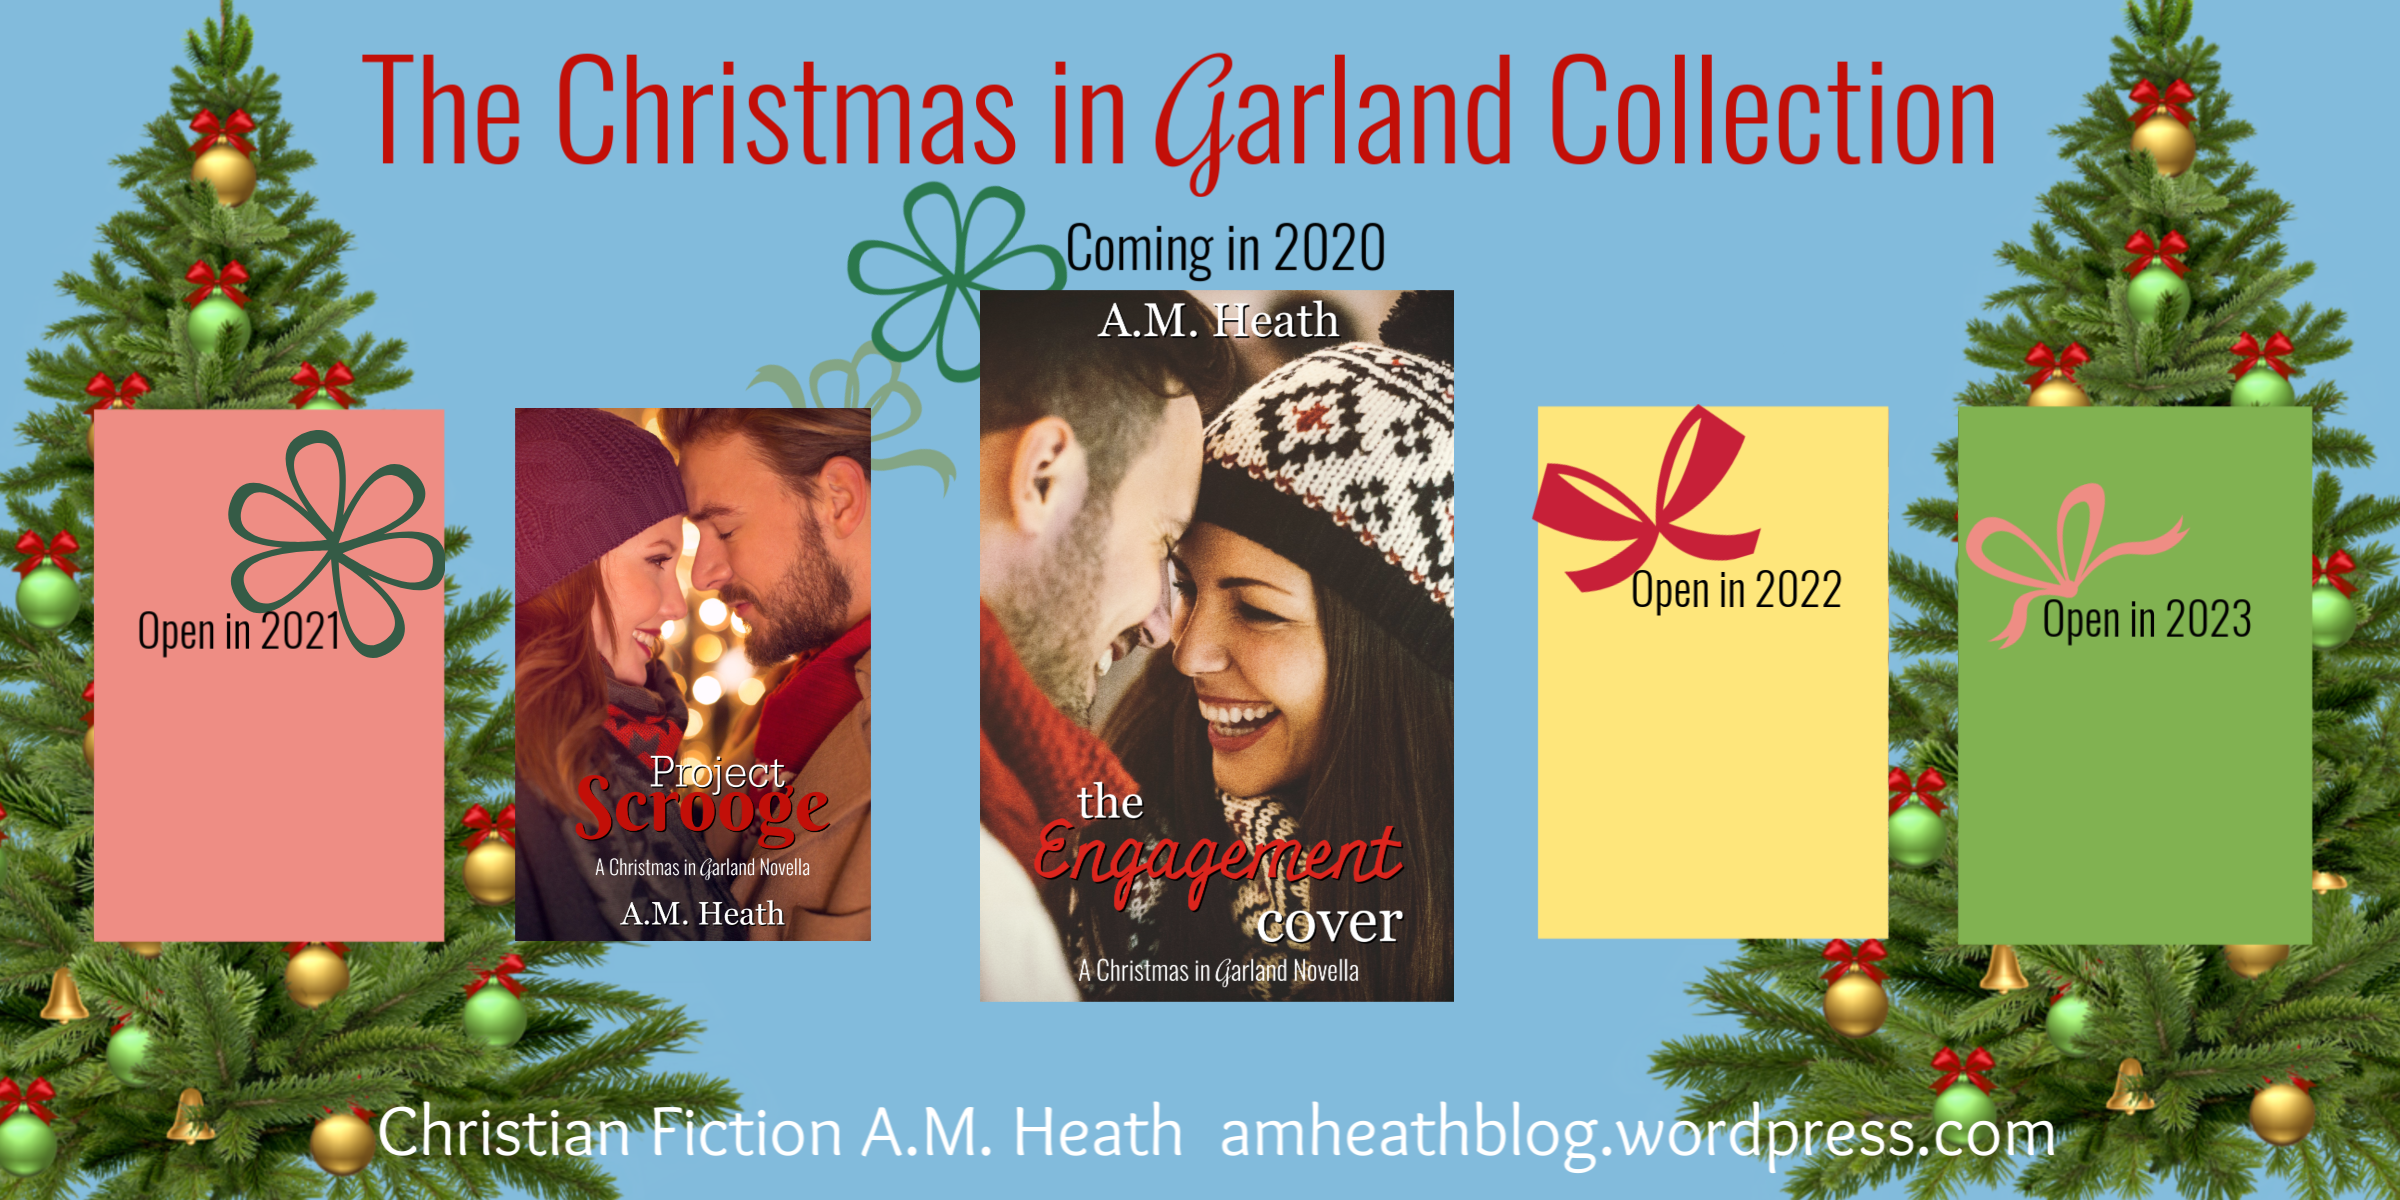 Garland Collection 2020 reveal